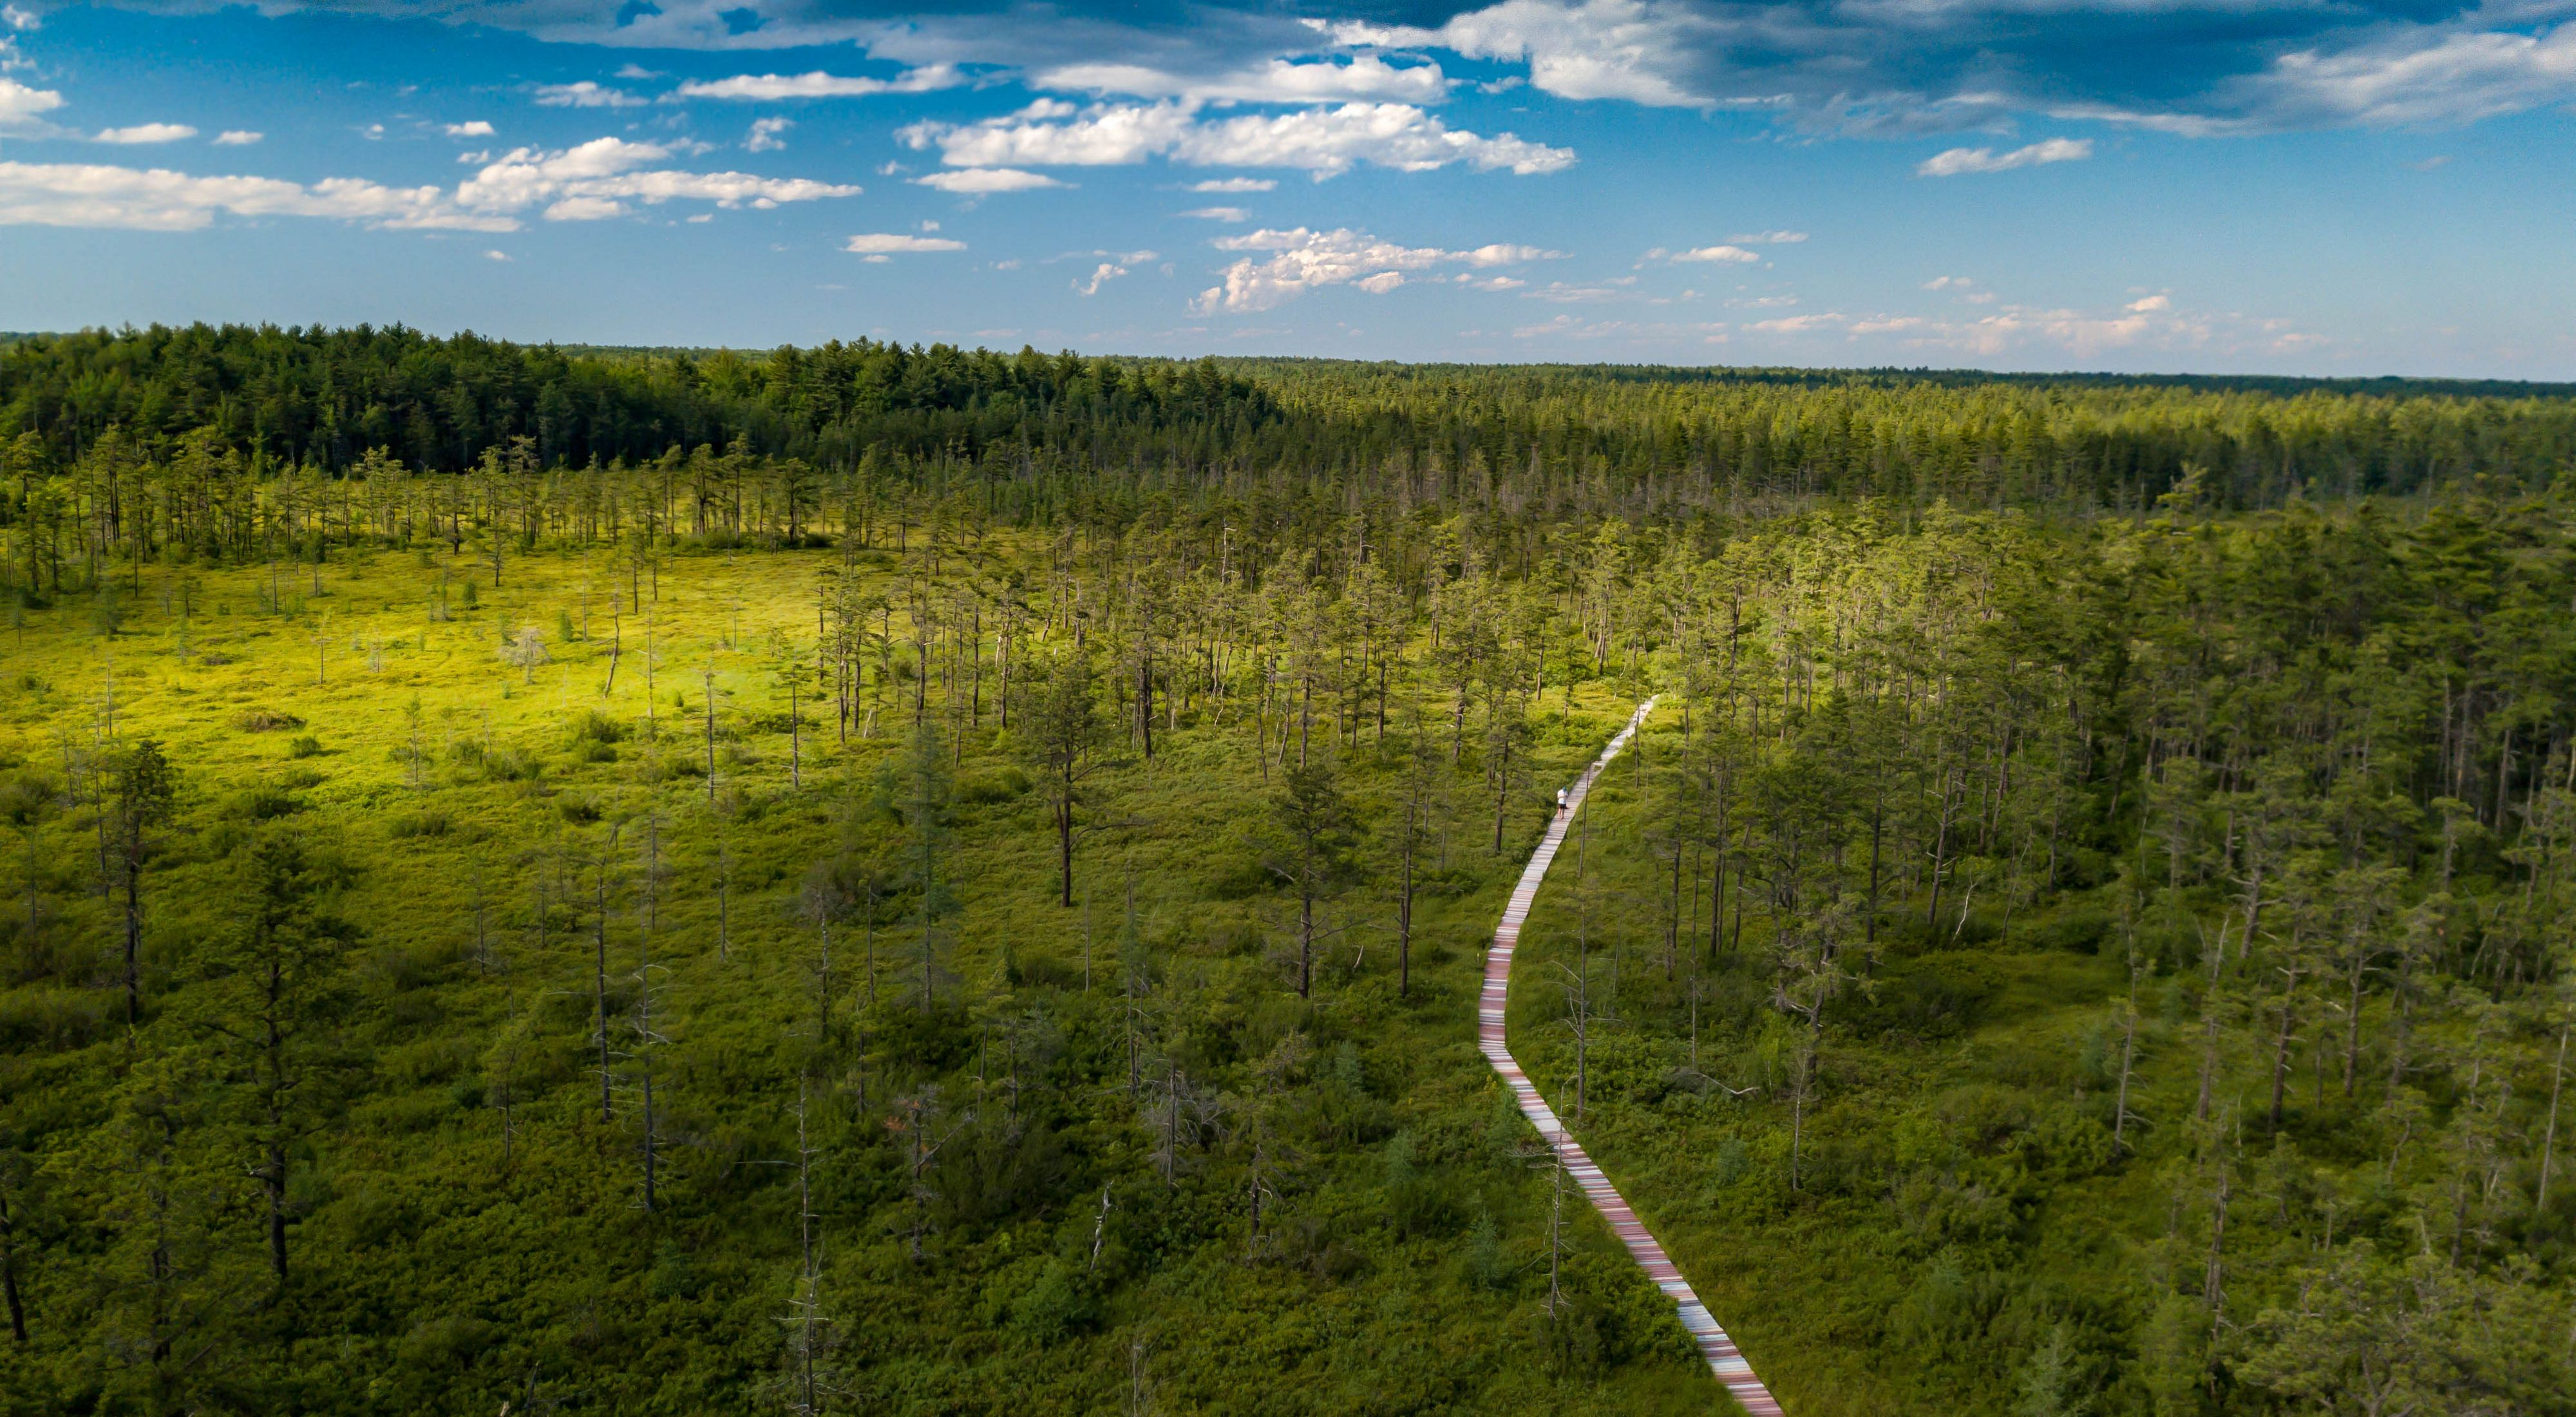 Aerial view of a long wooden boardwalk extending through forests and scrubby heath.